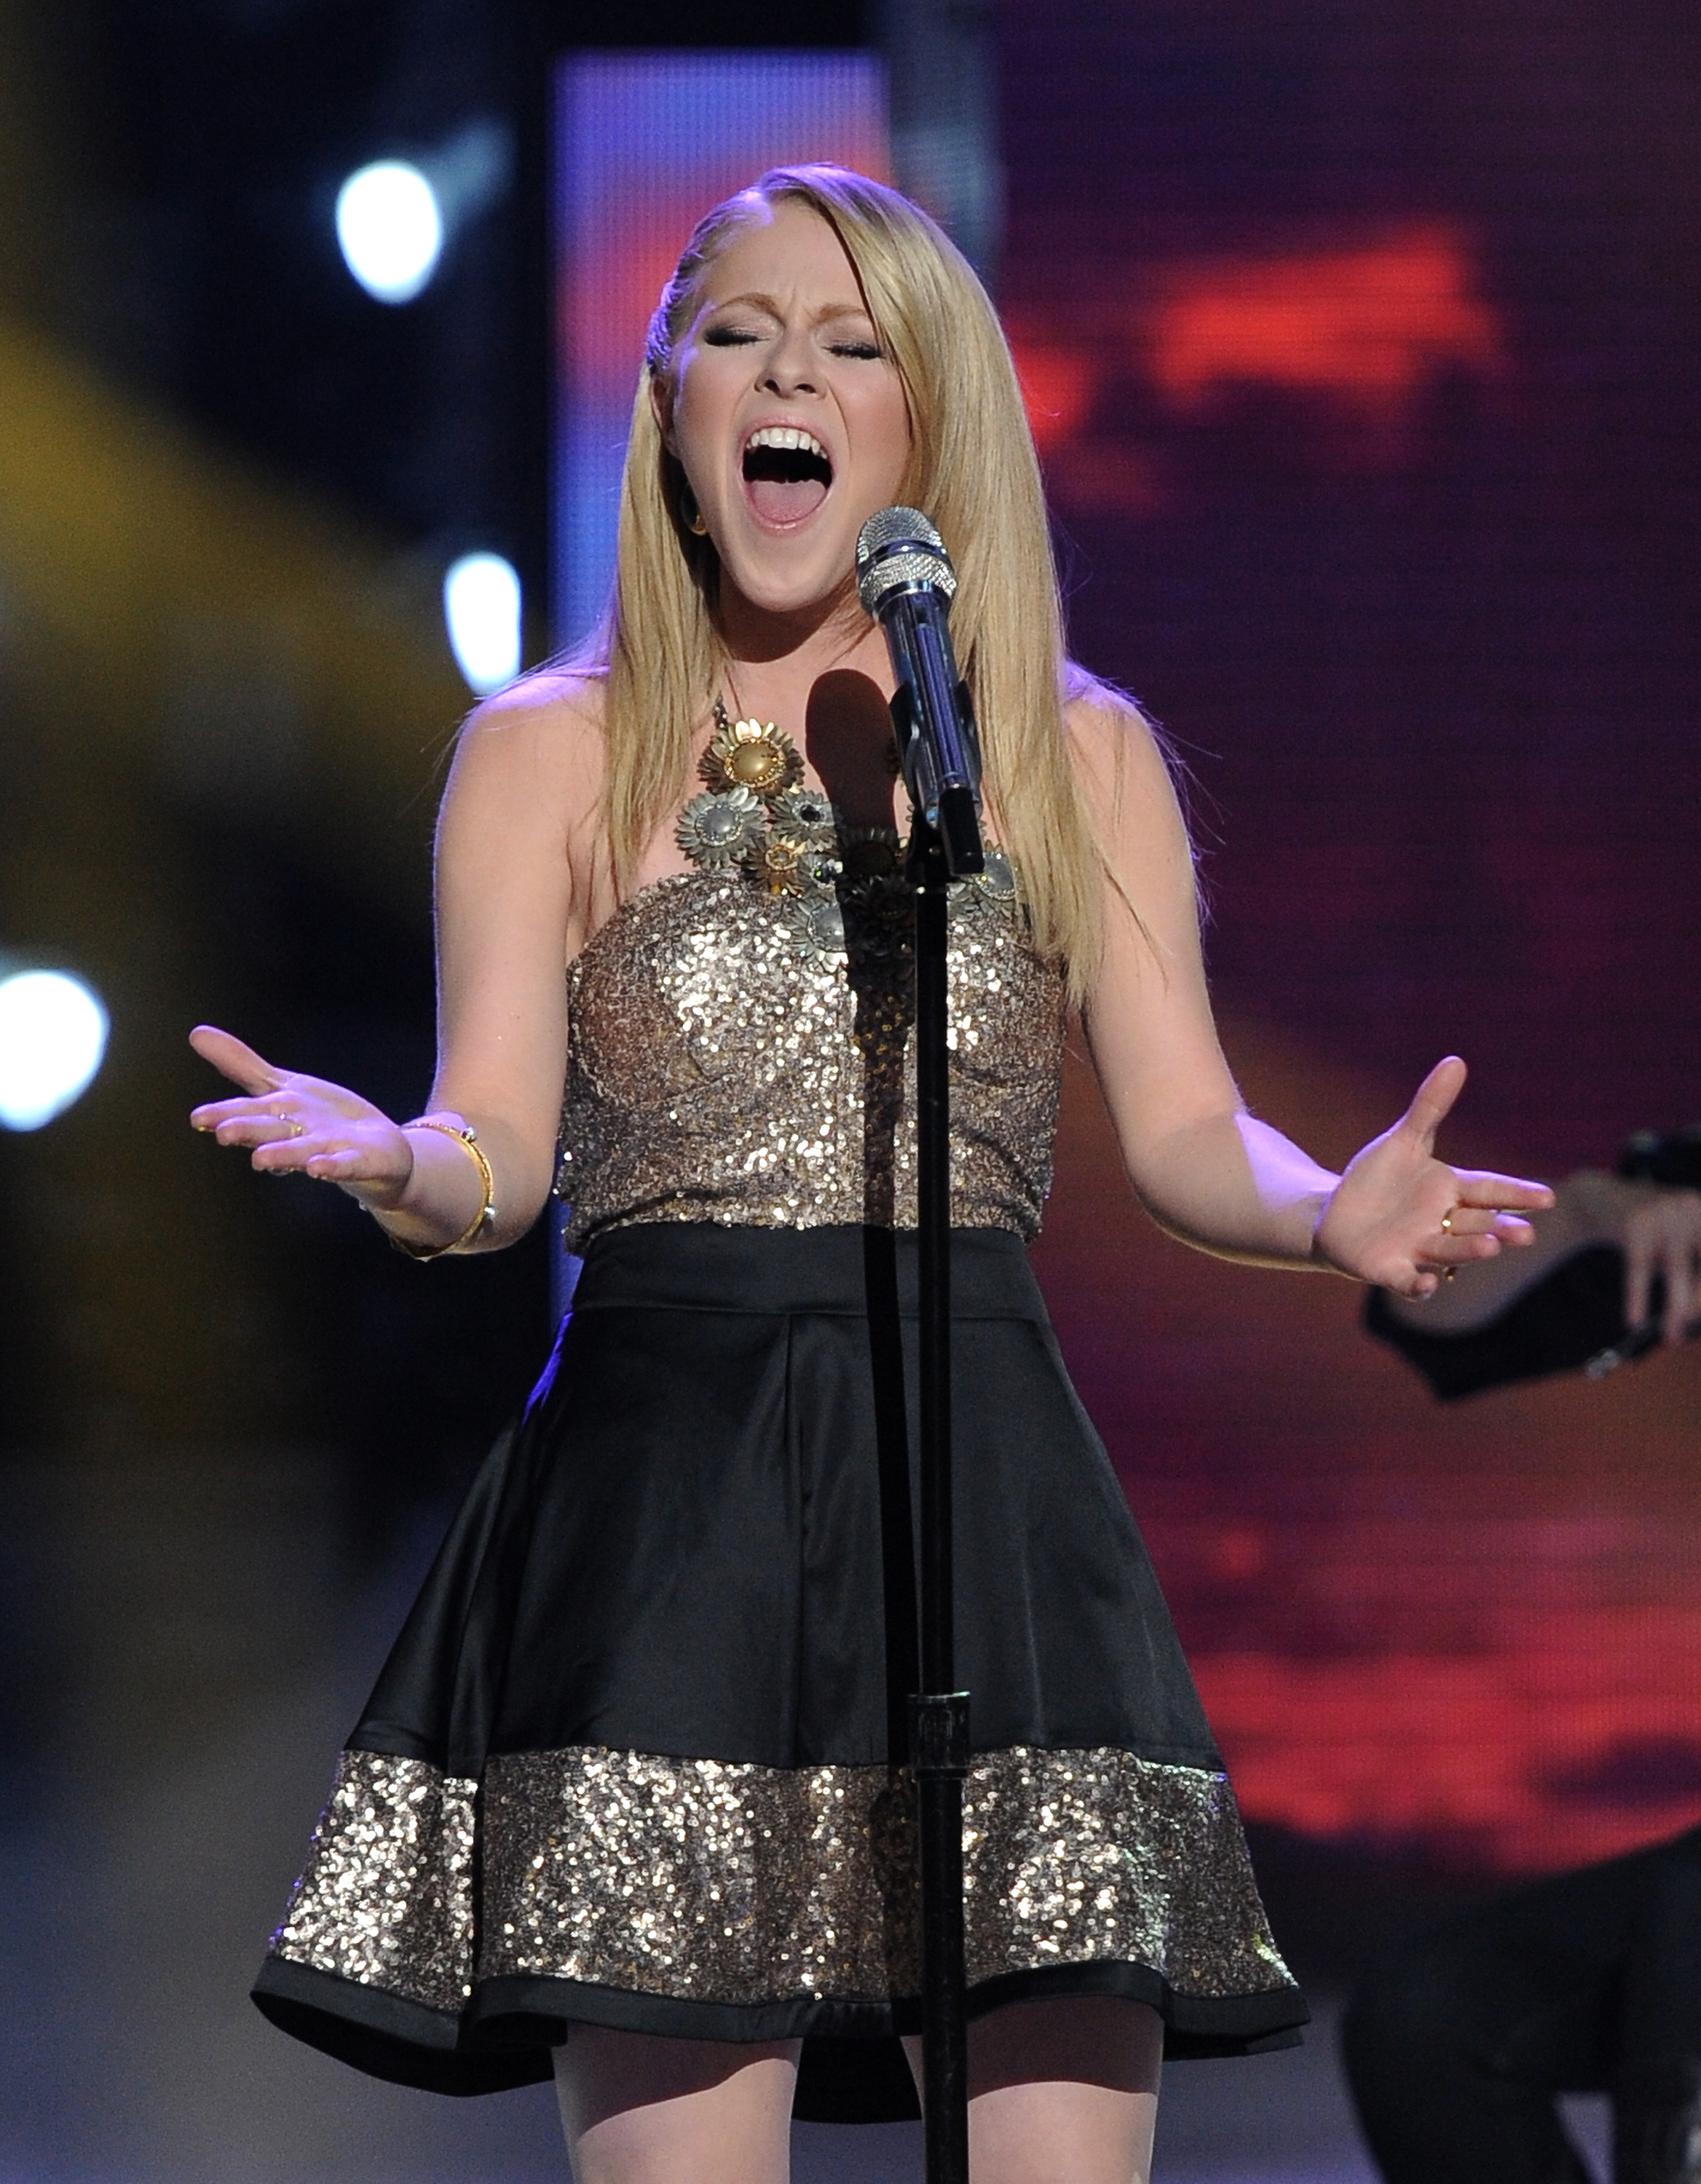 Hollie Cavanagh belted out a ballad.